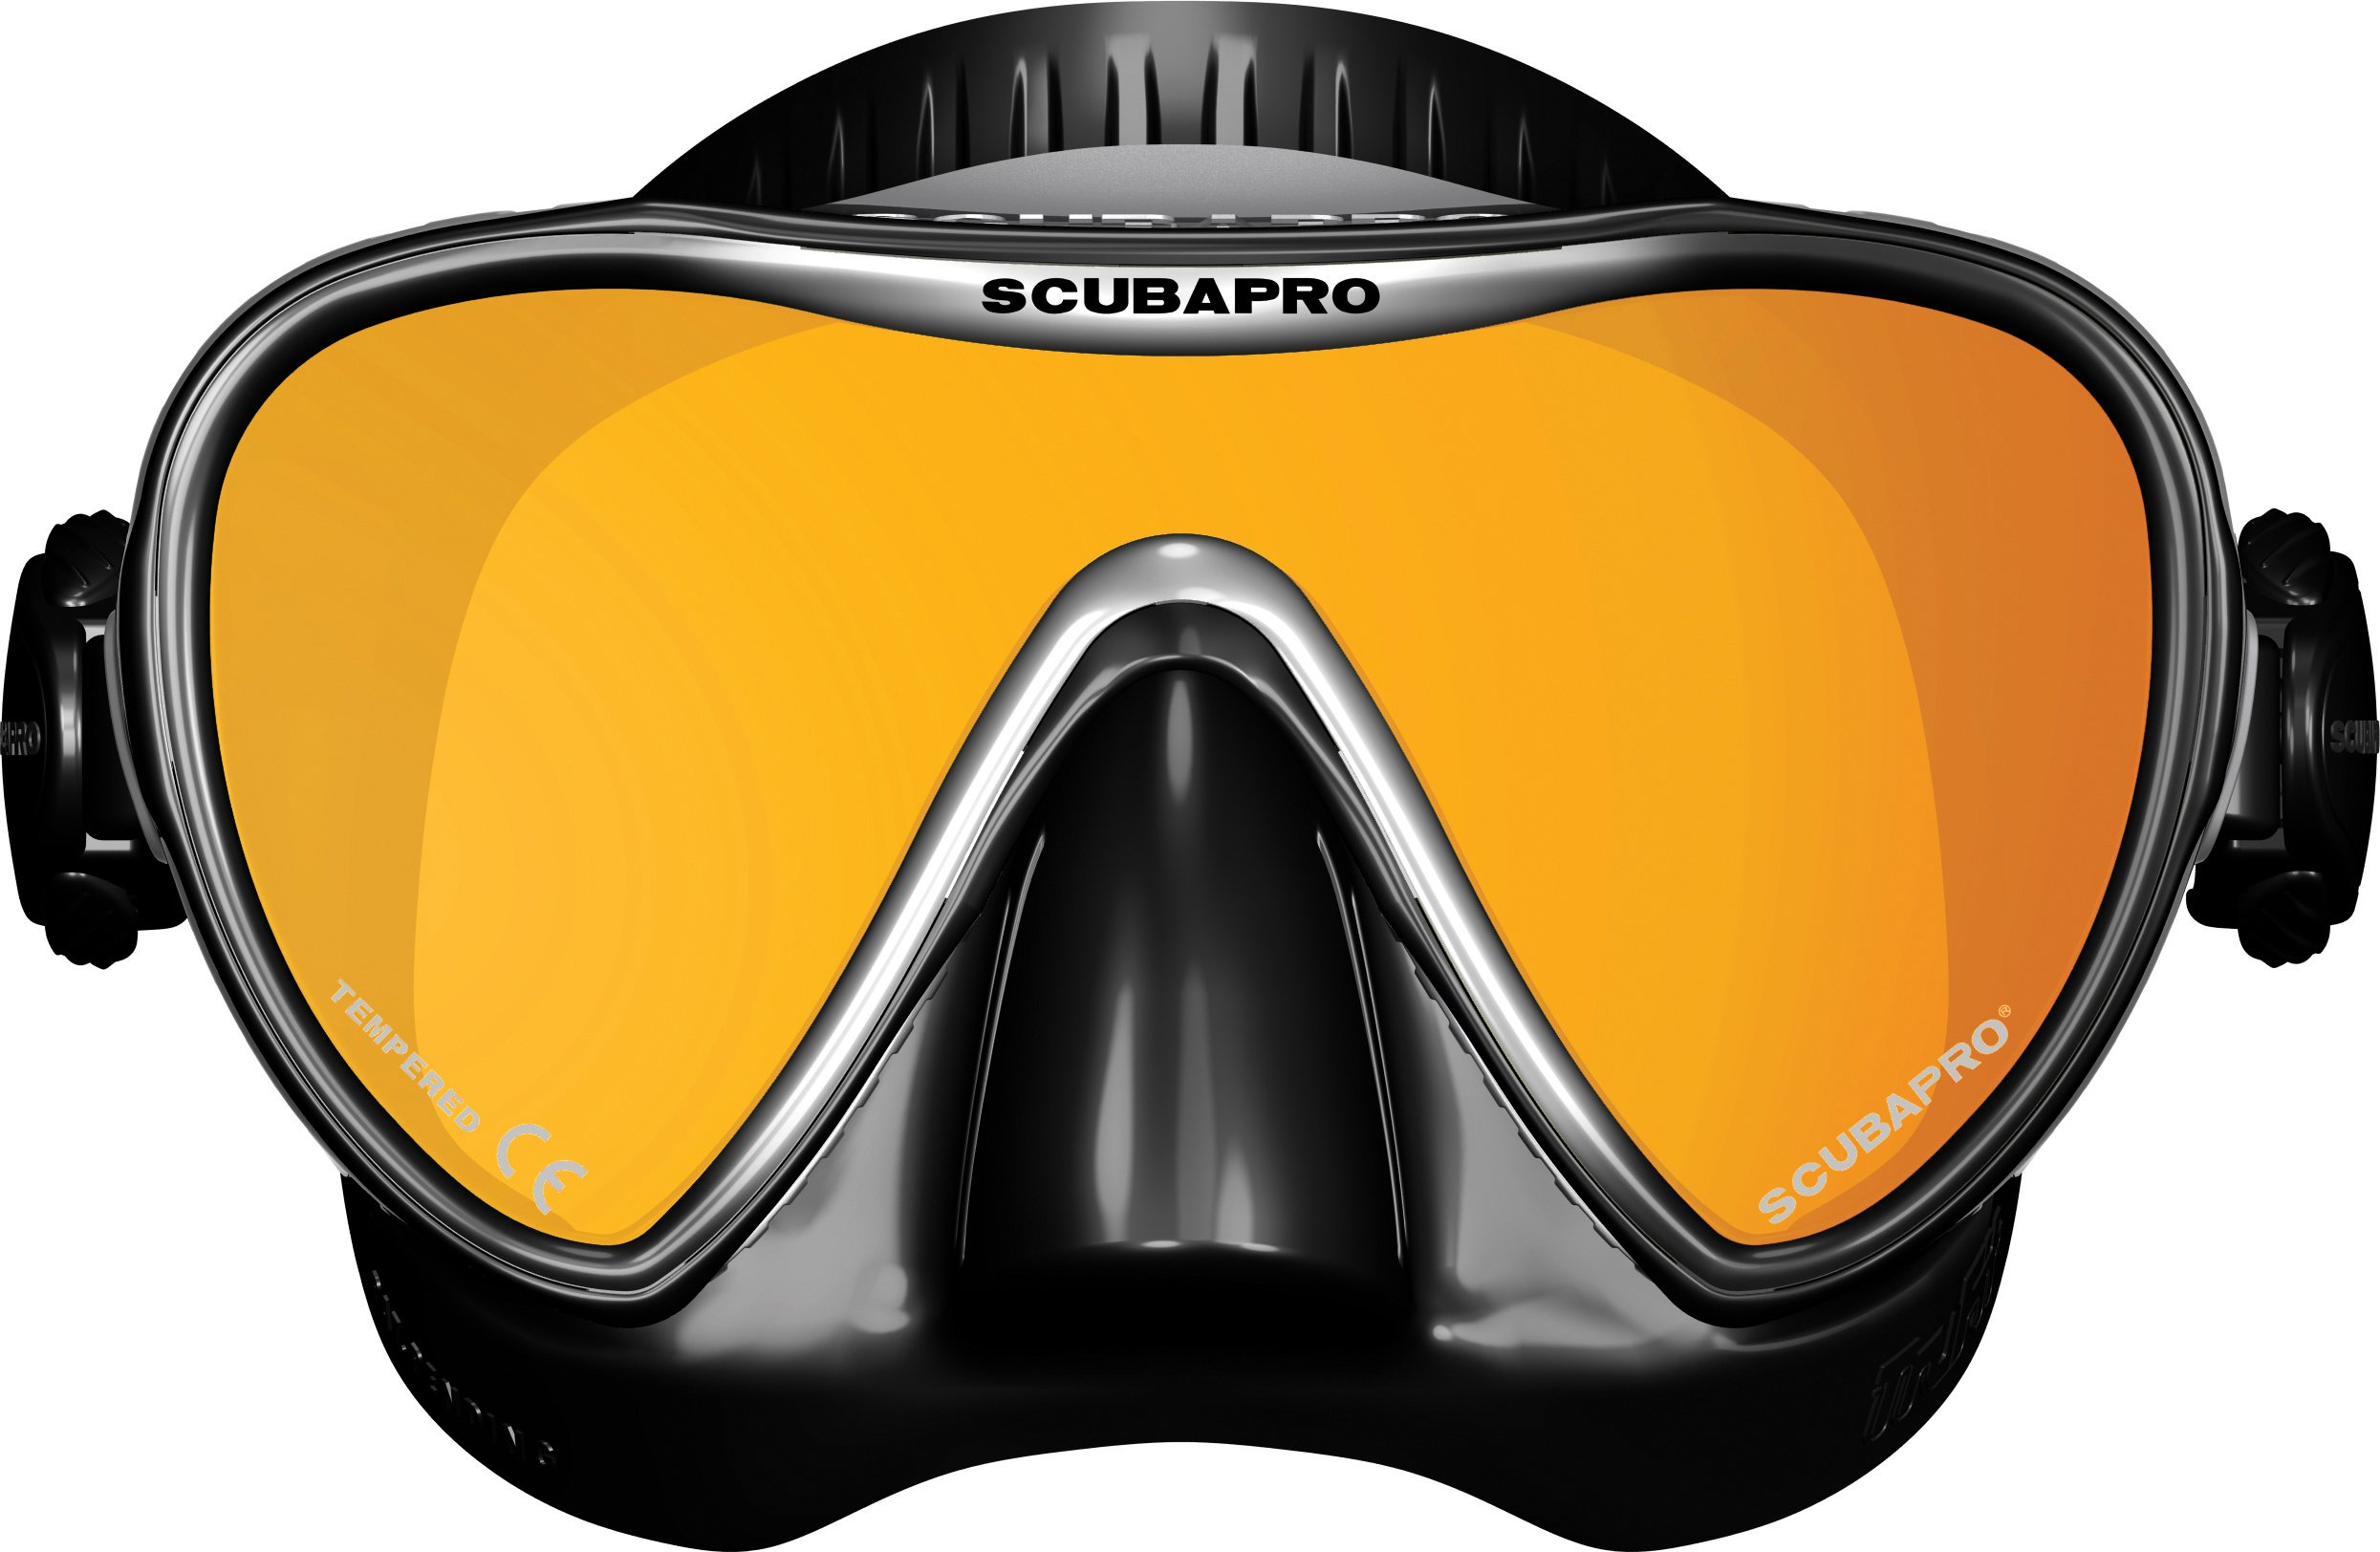 ScubaPro Synergy 2 TruFit Mirrored Single Lens Mask,Black/Silver/Mirror by Scubapro